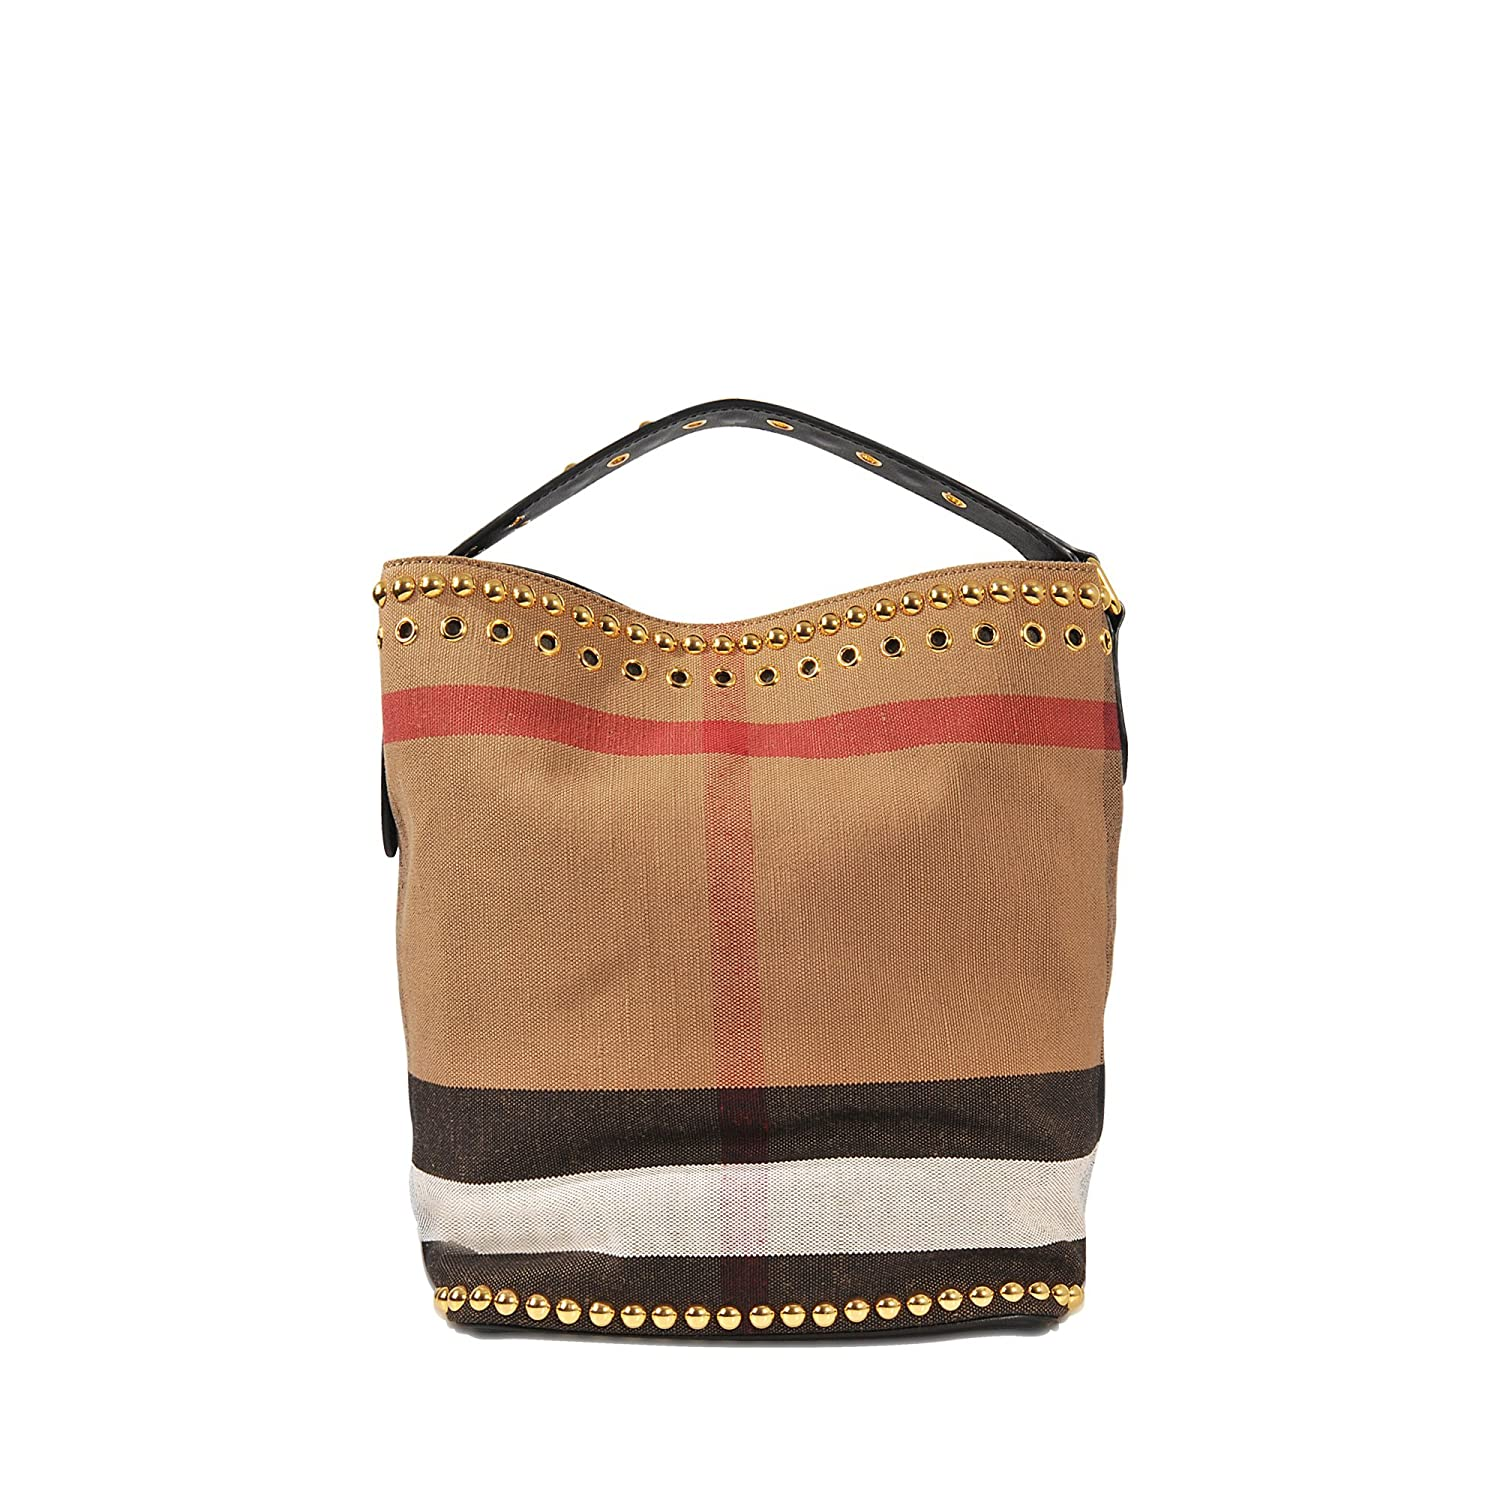 7592b9651c56 Amazon.com  Burberry Women s Medium  Ashby  Riveted Canvas Check  Leather Handbag  Beige + Brown  Clothing